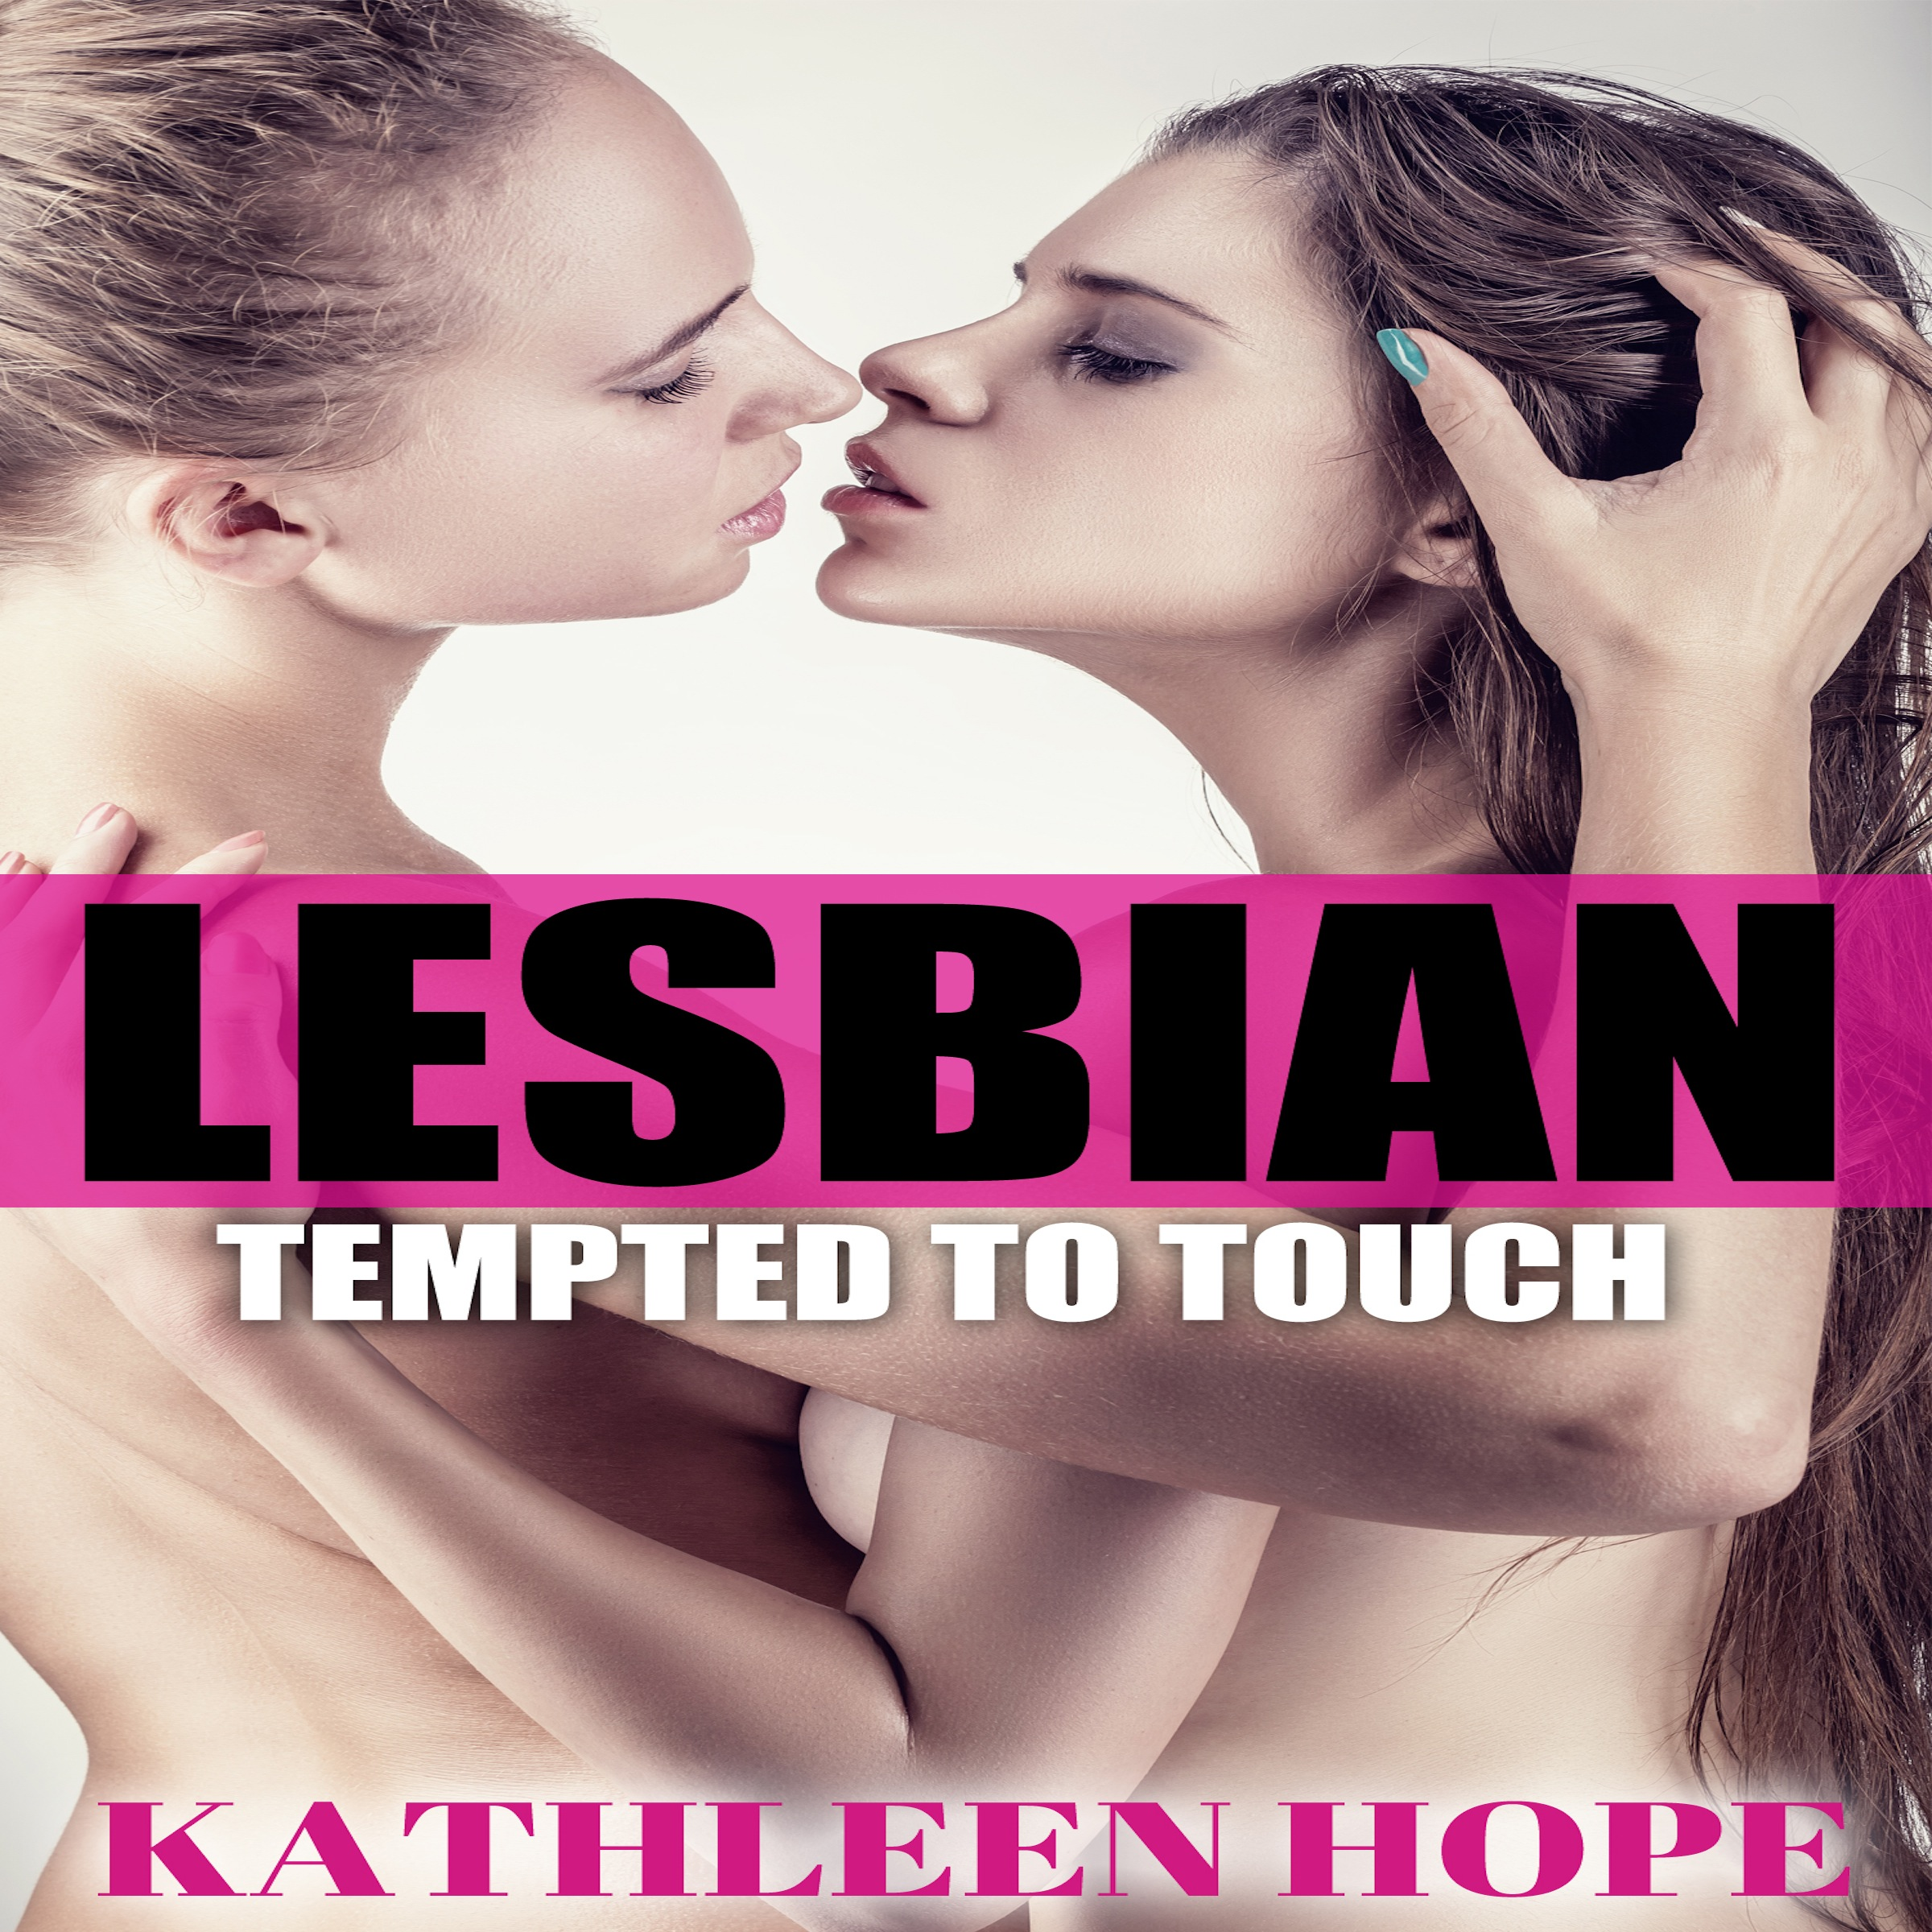 Lesbian: tempted to touch